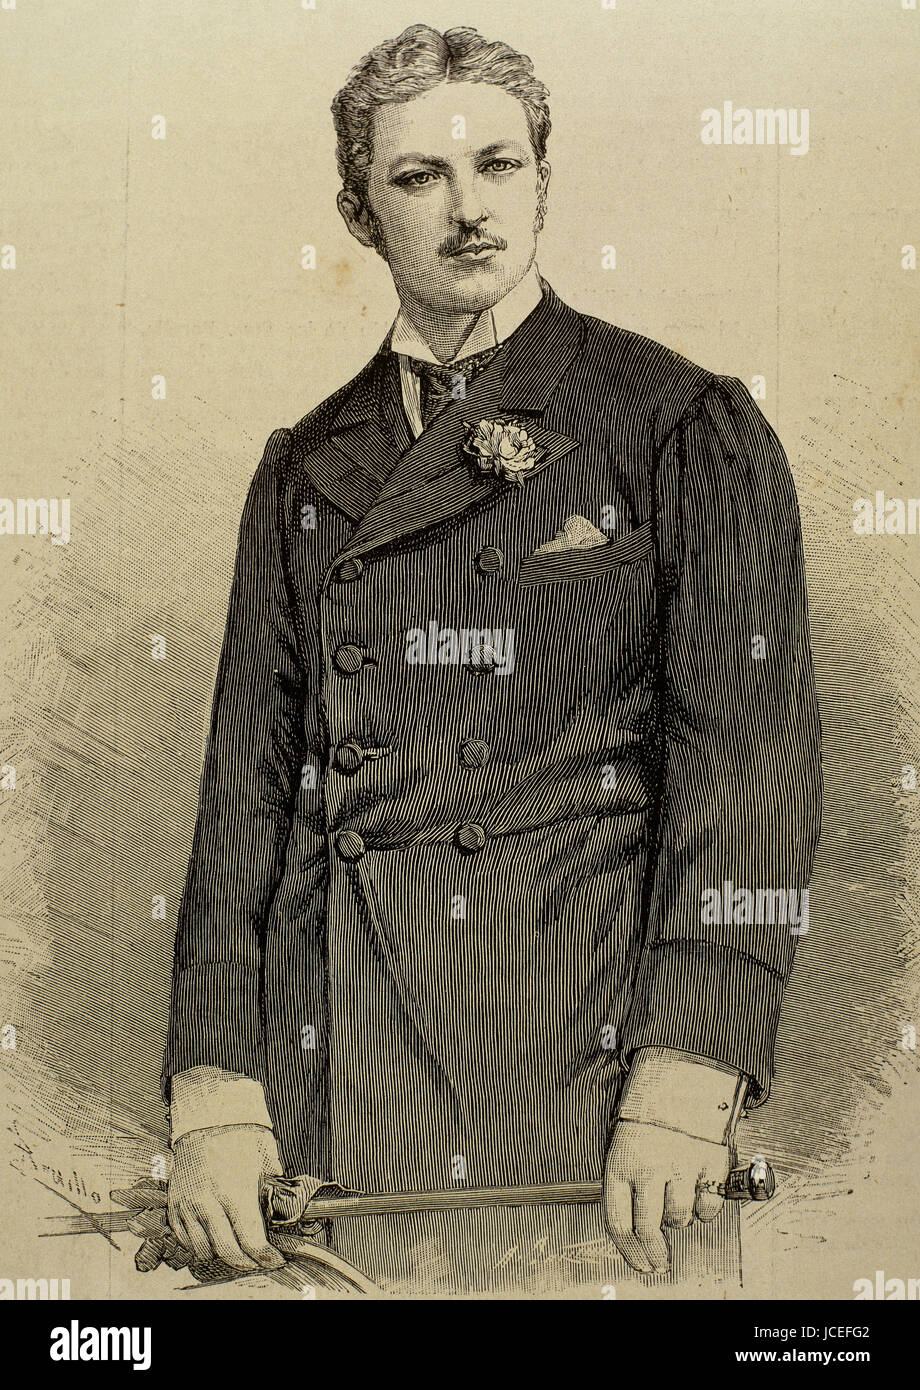 Prince Philippe d'Orleans, Duke of Orleans (1869-1926). Orleanist pretender to the French throne from 1894 to - Stock Image